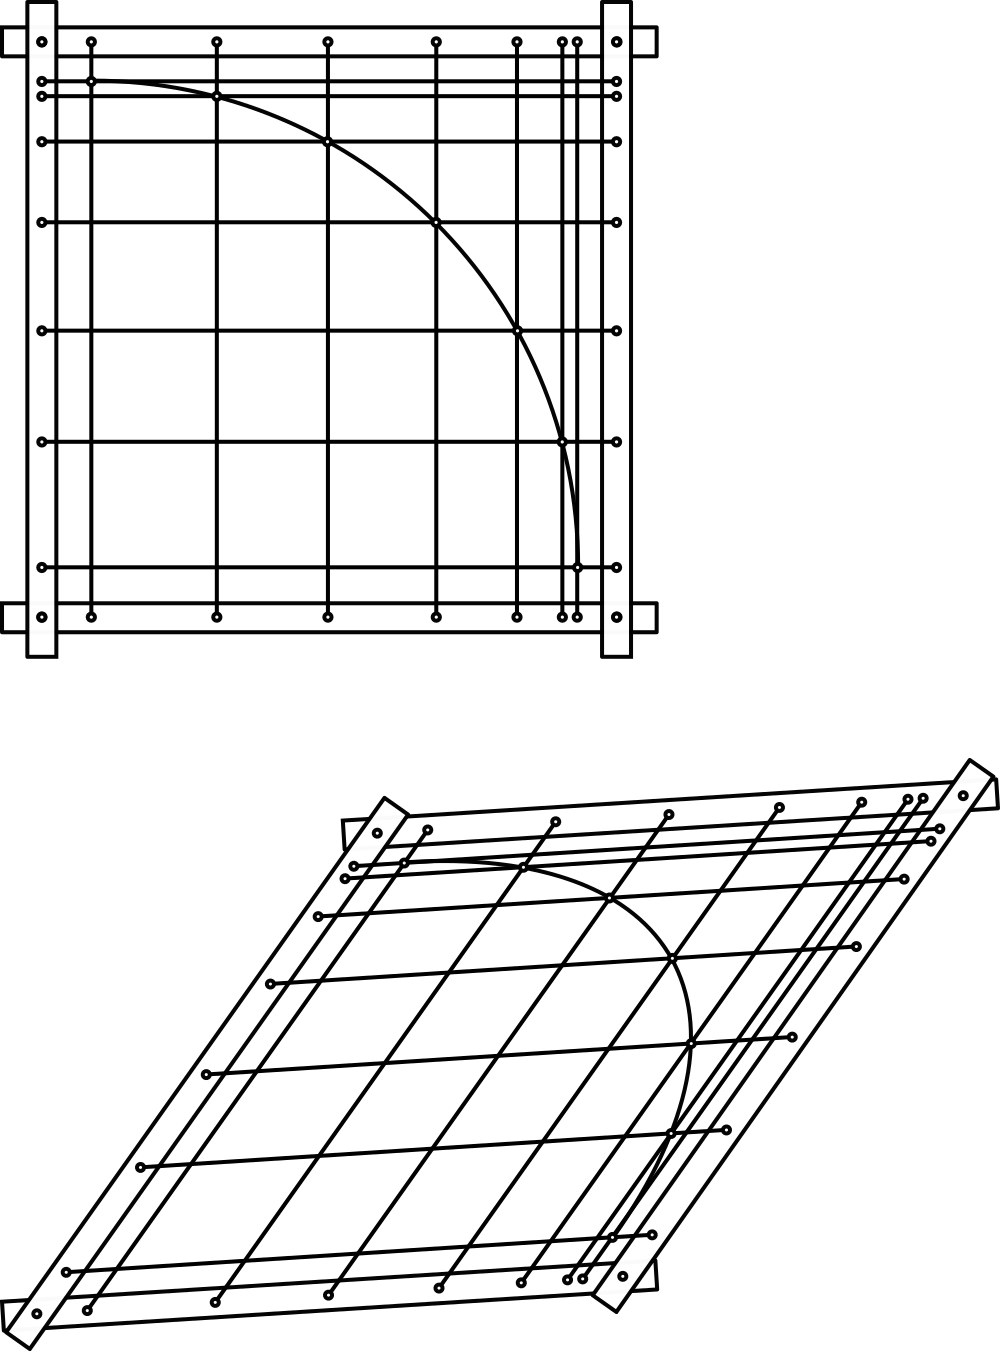 images/parallelogram.png